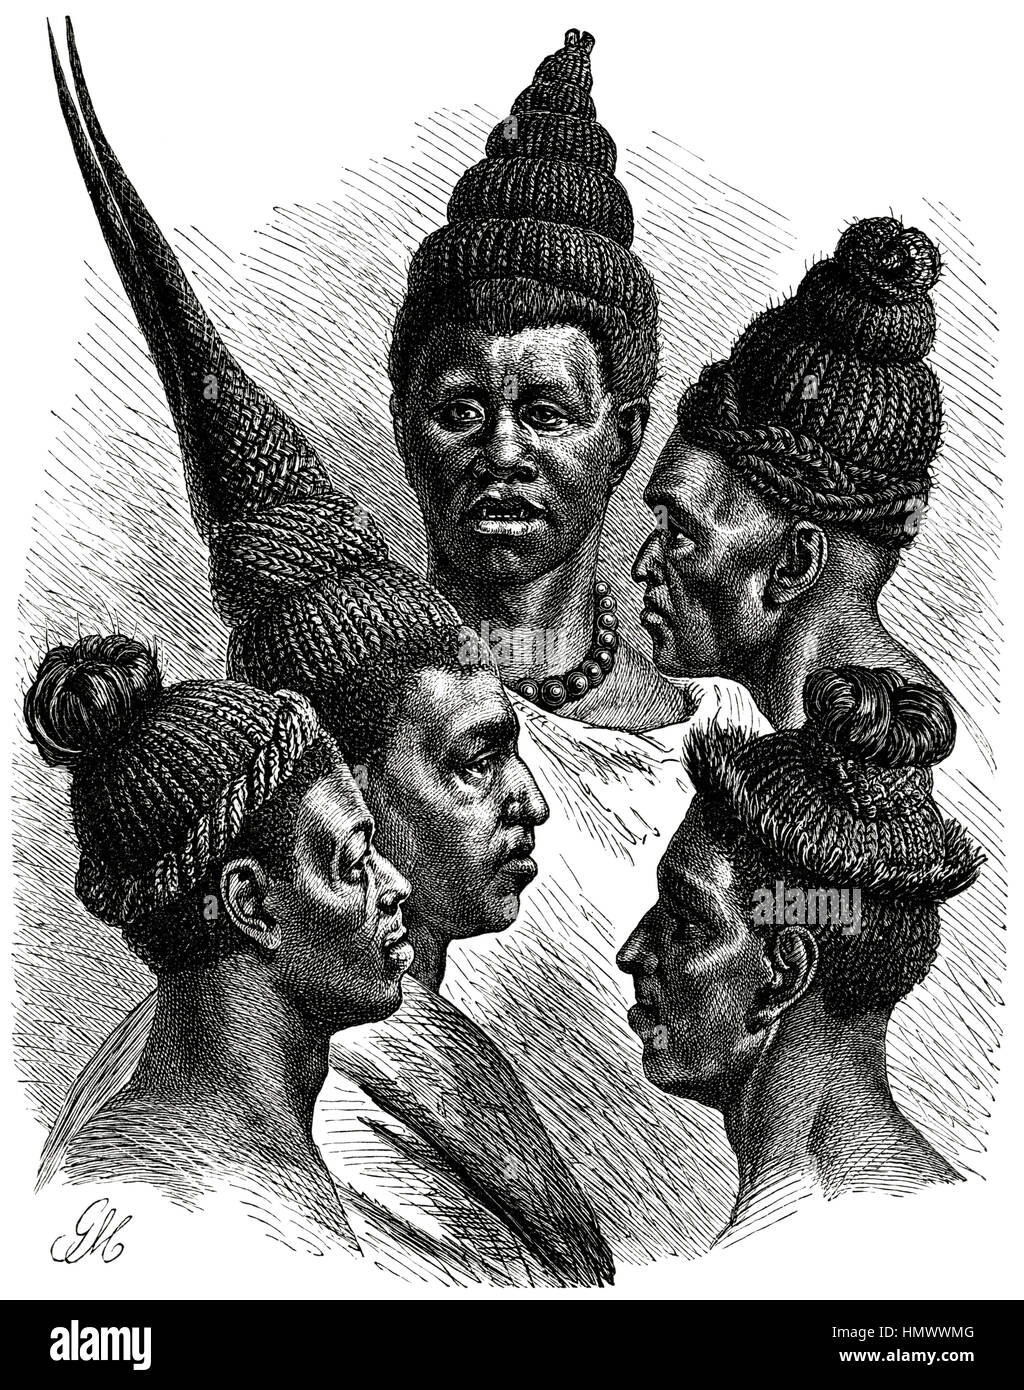 Hair fashions of the Maschukulumbe, Southern Africa, Illustration, 1885 - Stock Image